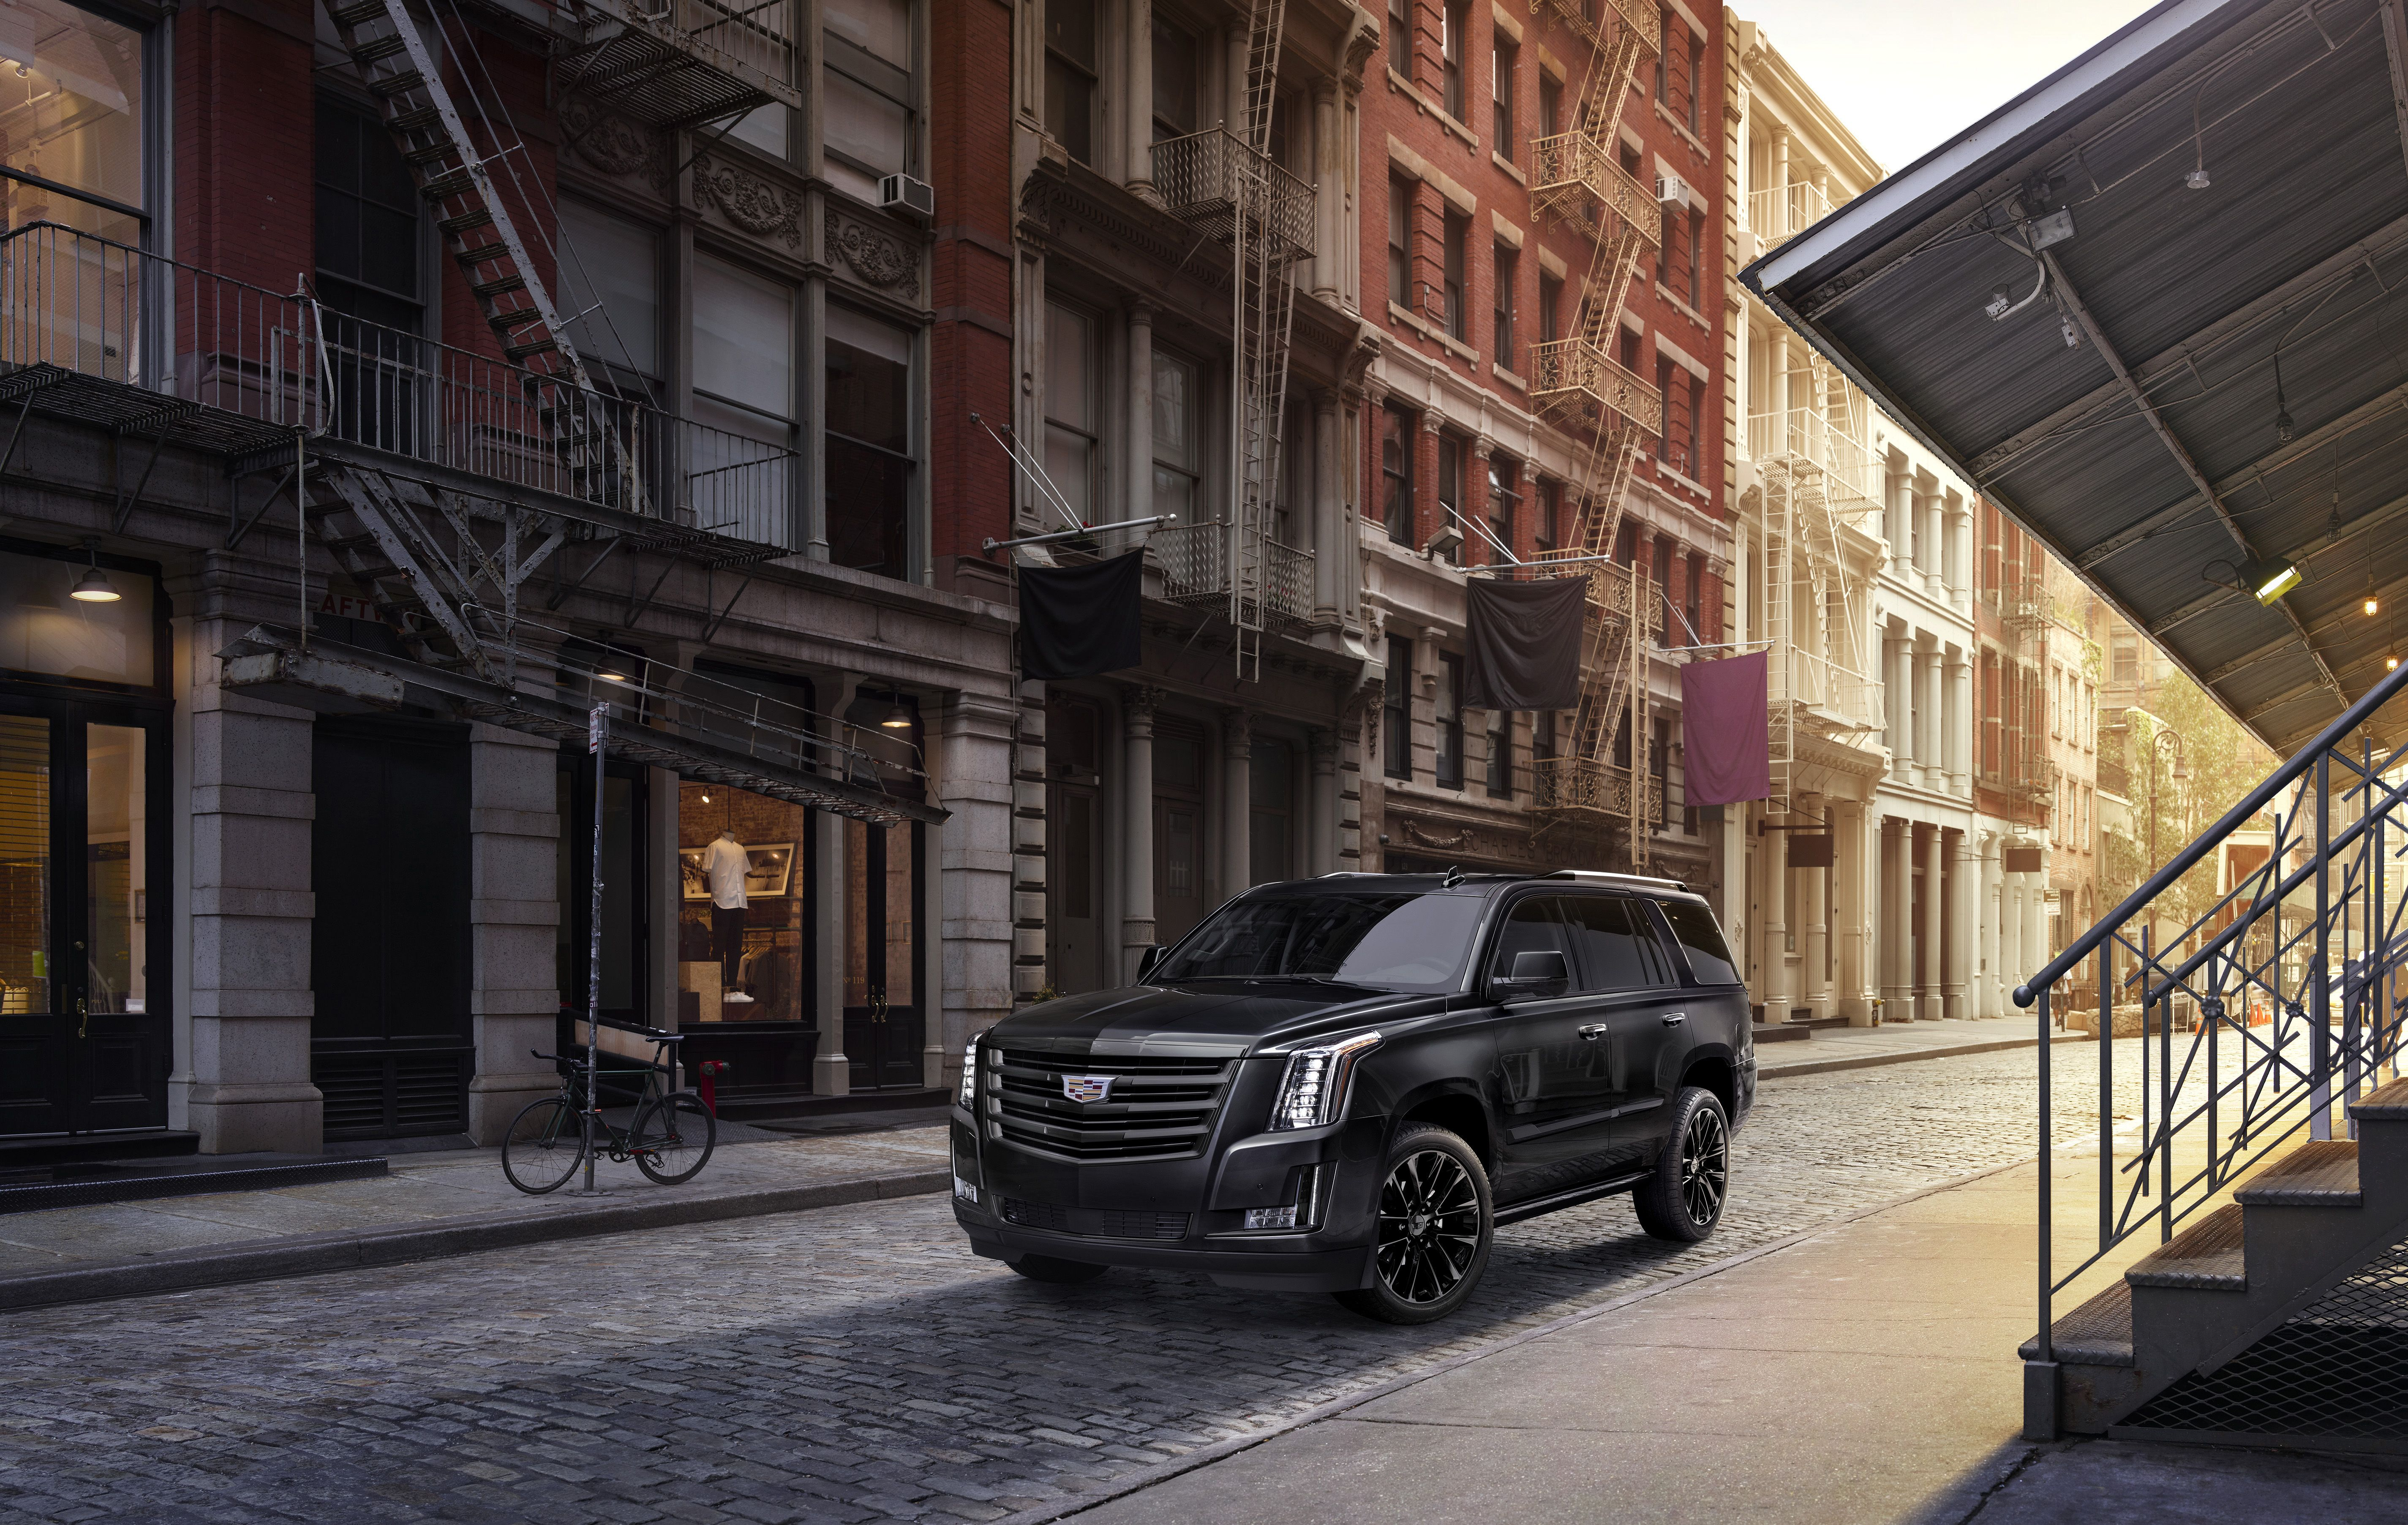 Groovy 2020 Cadillac Escalade Review Pricing And Specs Dailytribune Chair Design For Home Dailytribuneorg